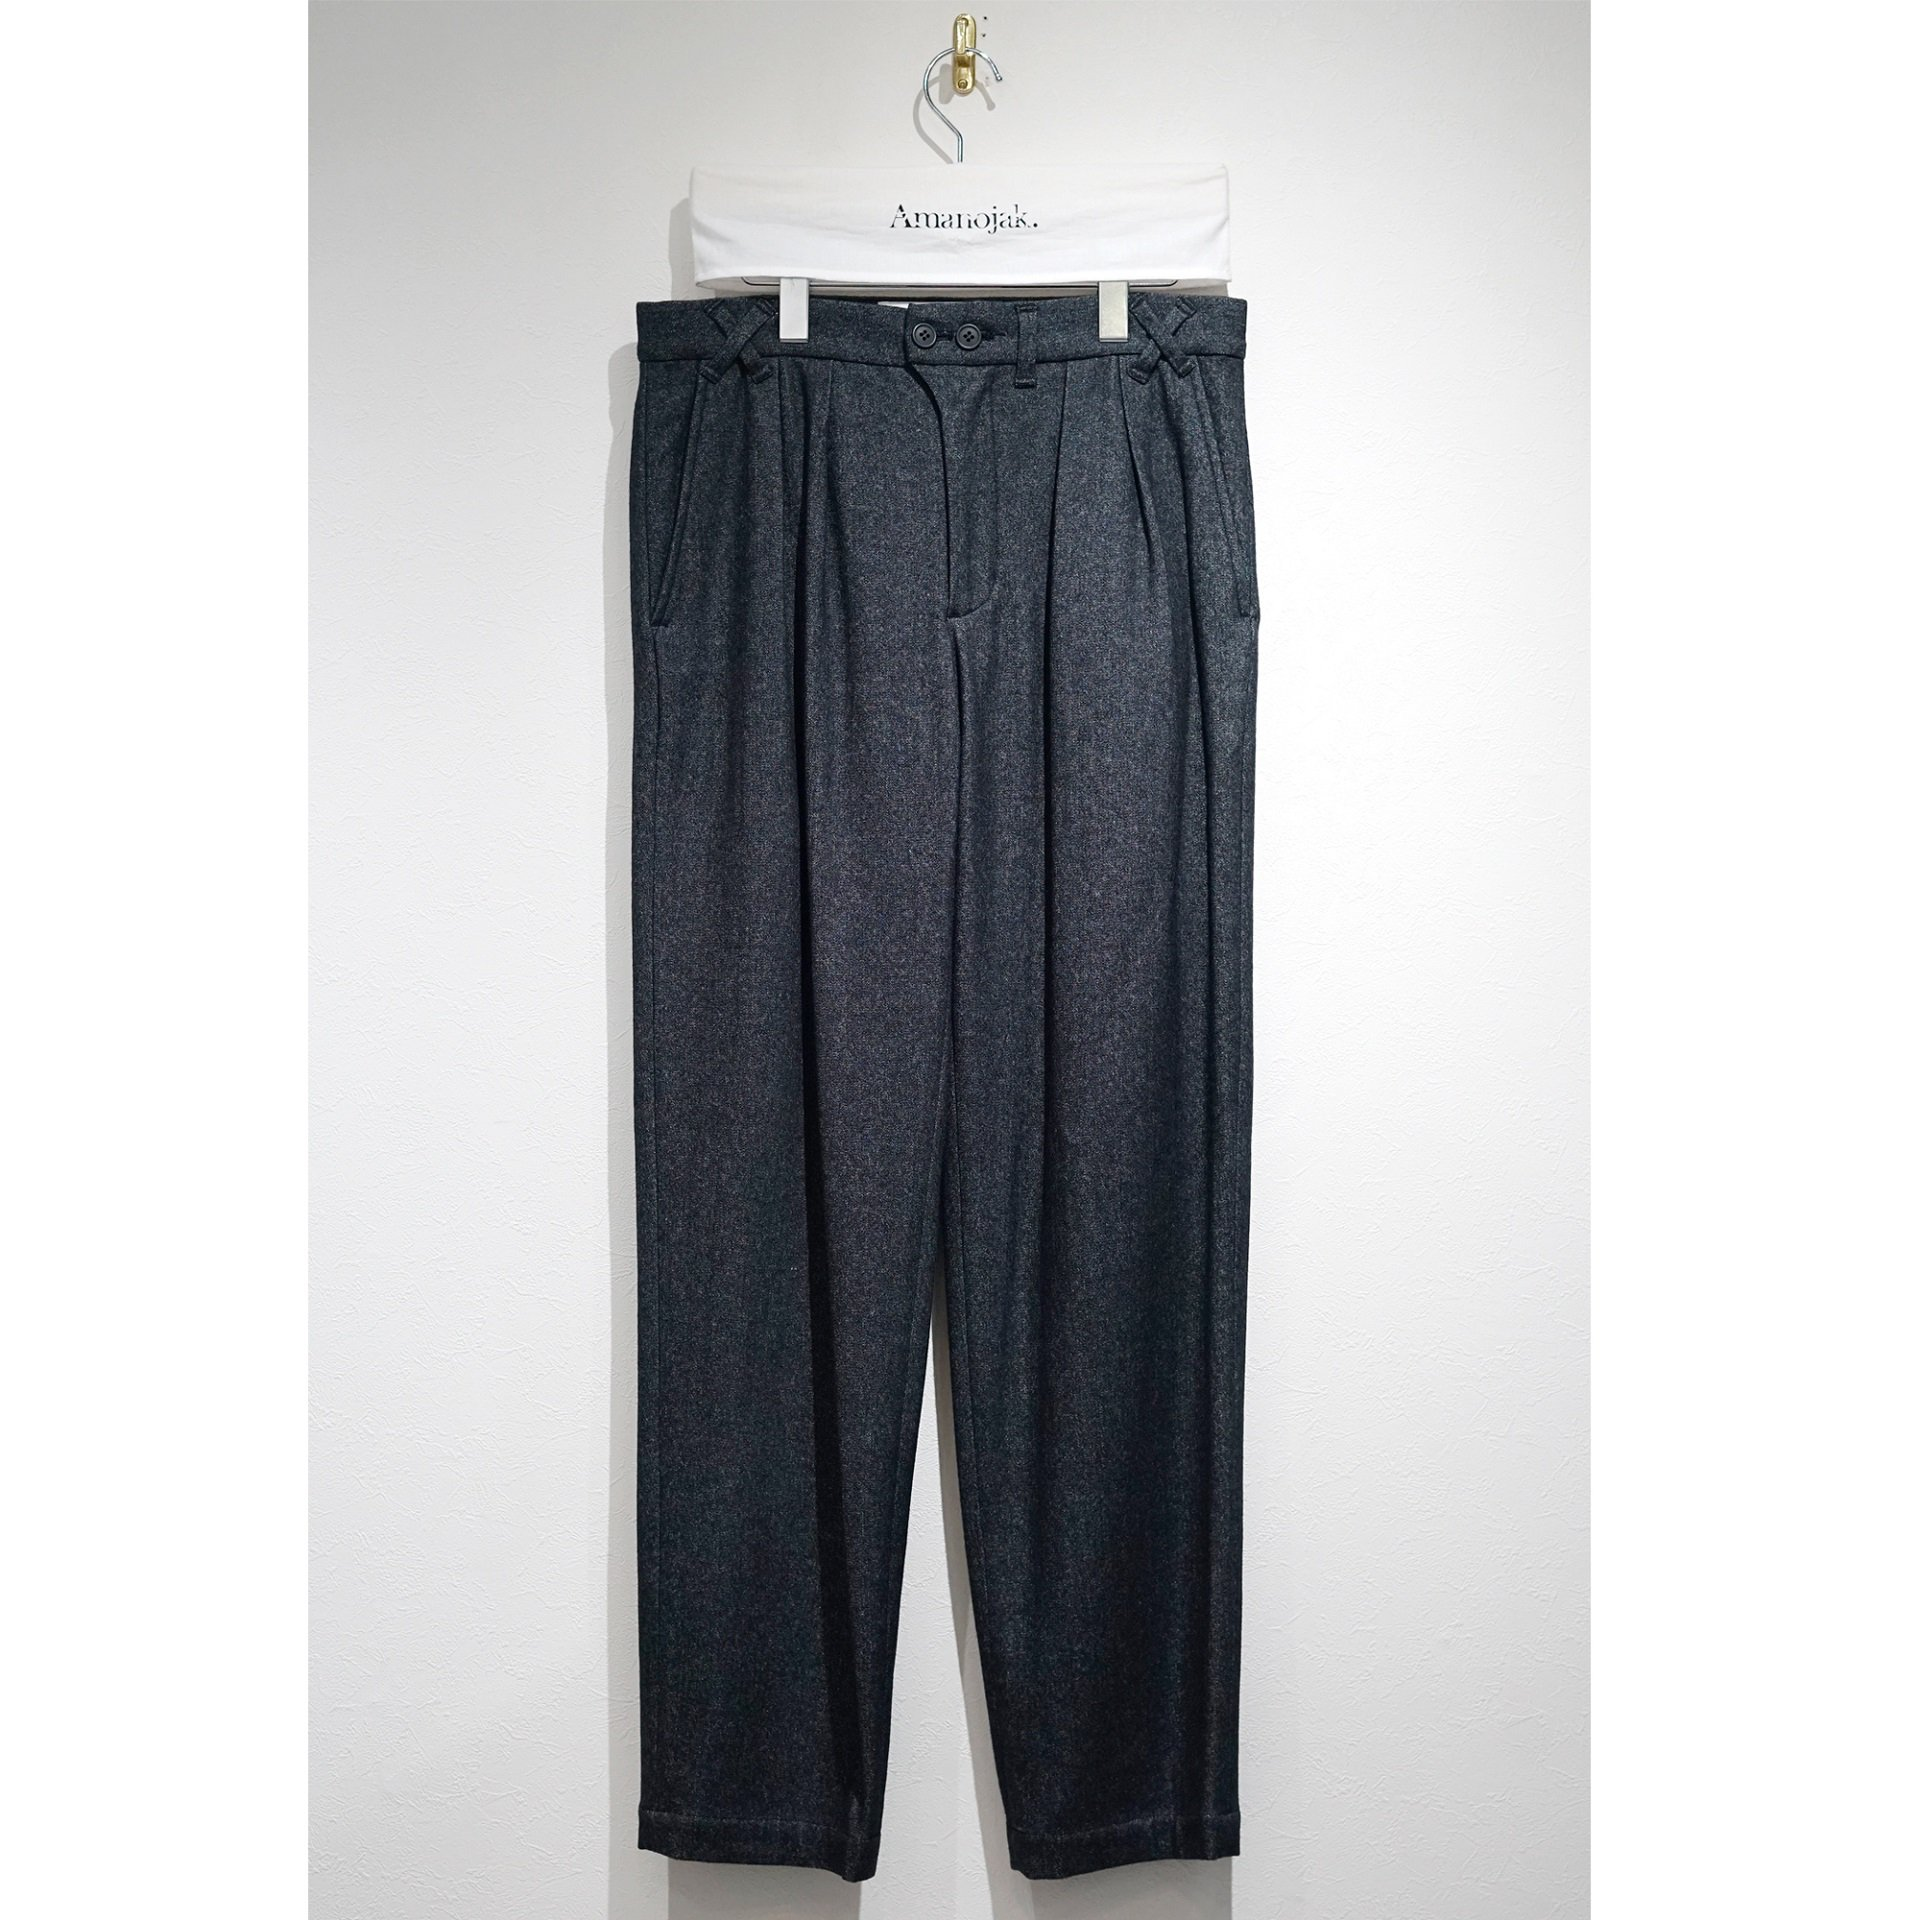 JULIEN DAVID-2 TUCK WIDE WOVEN TROUSERS NAVY